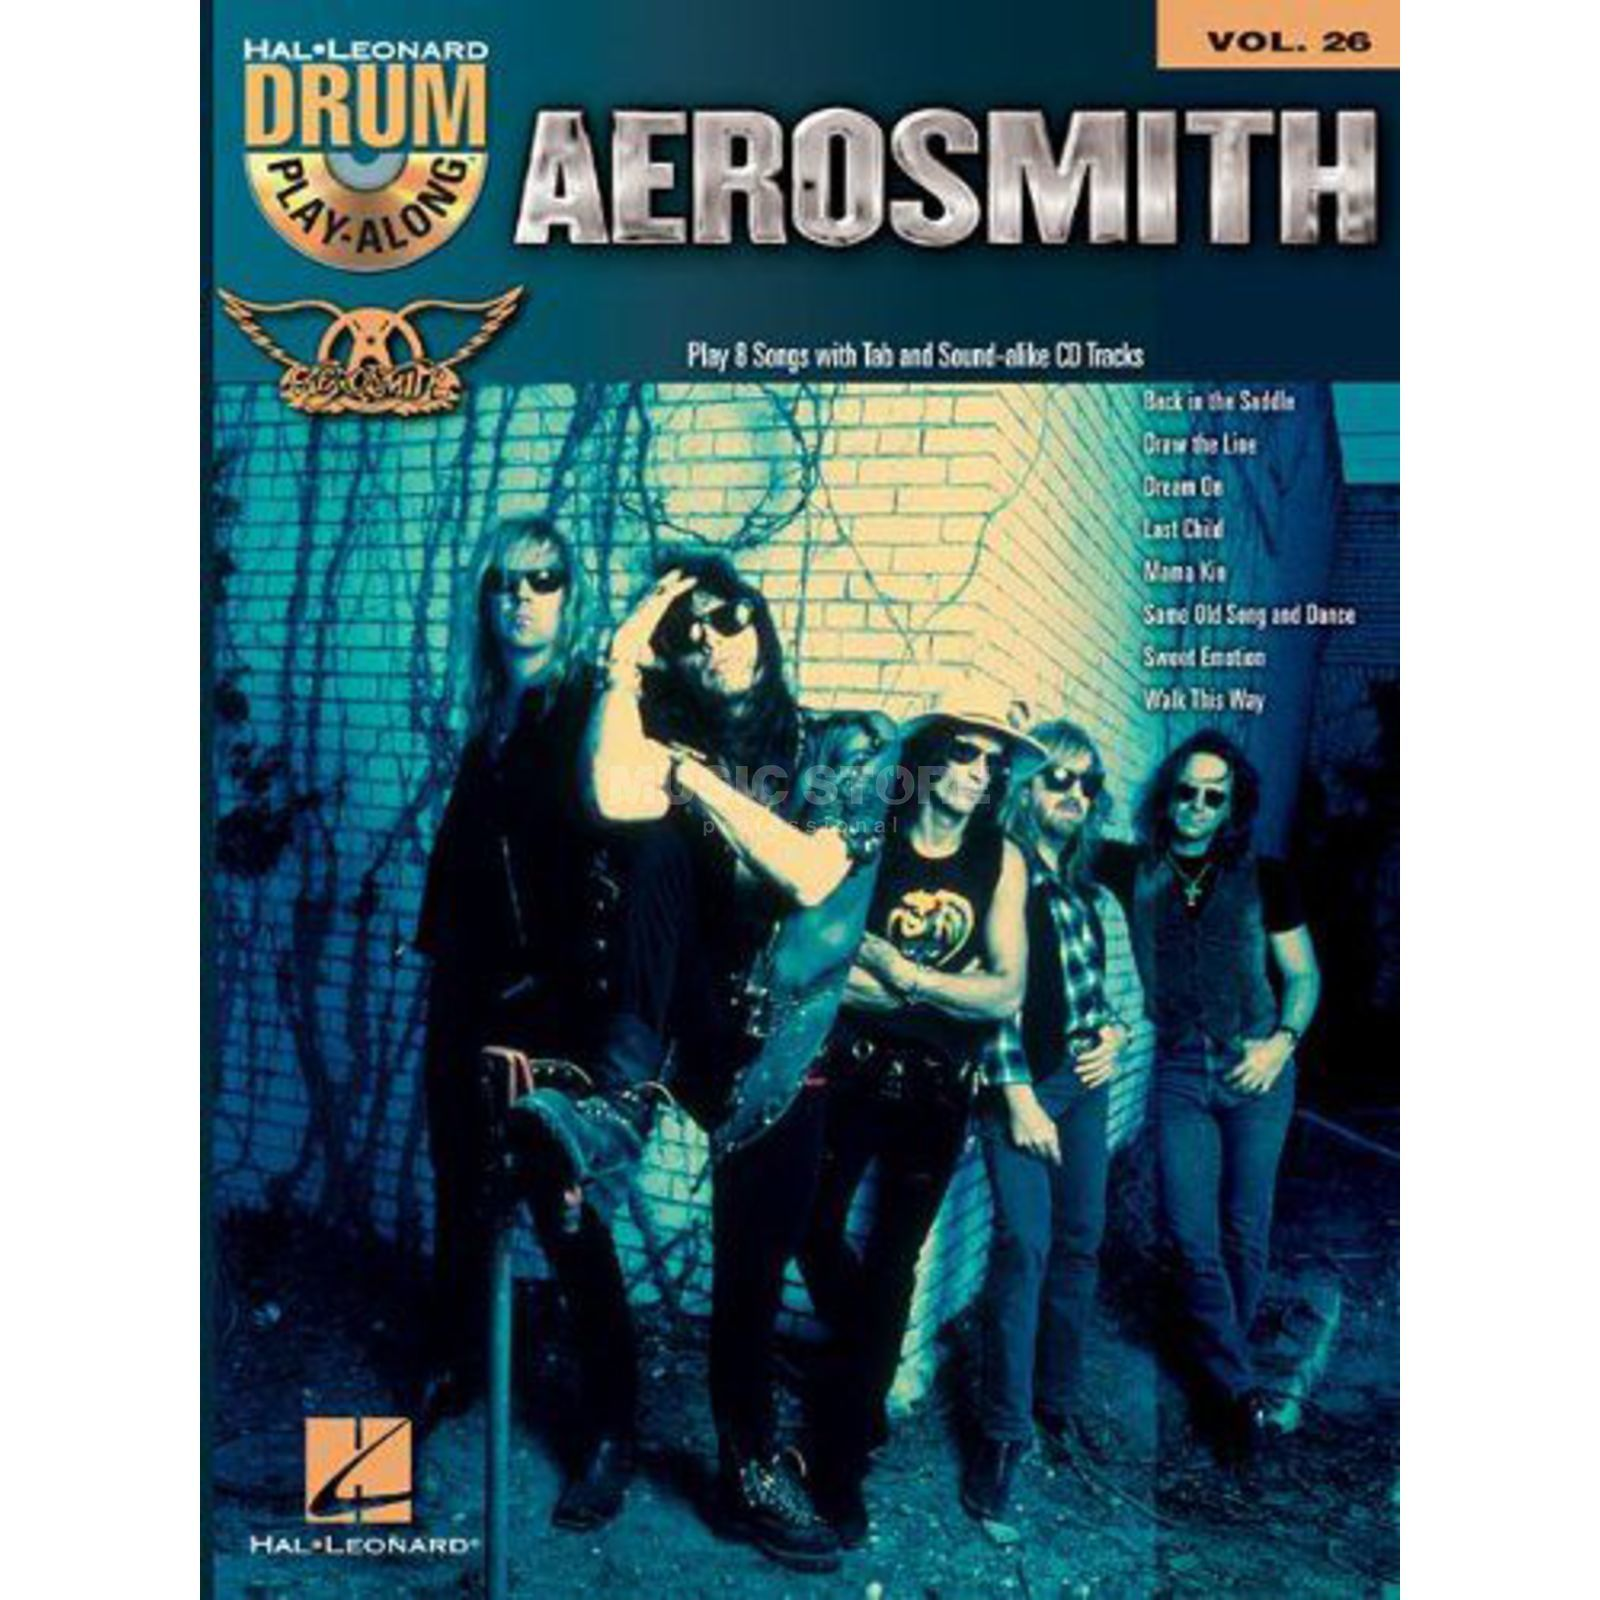 Hal Leonard Drum Play-Along: Aerosmith Vol. 26 Produktbillede